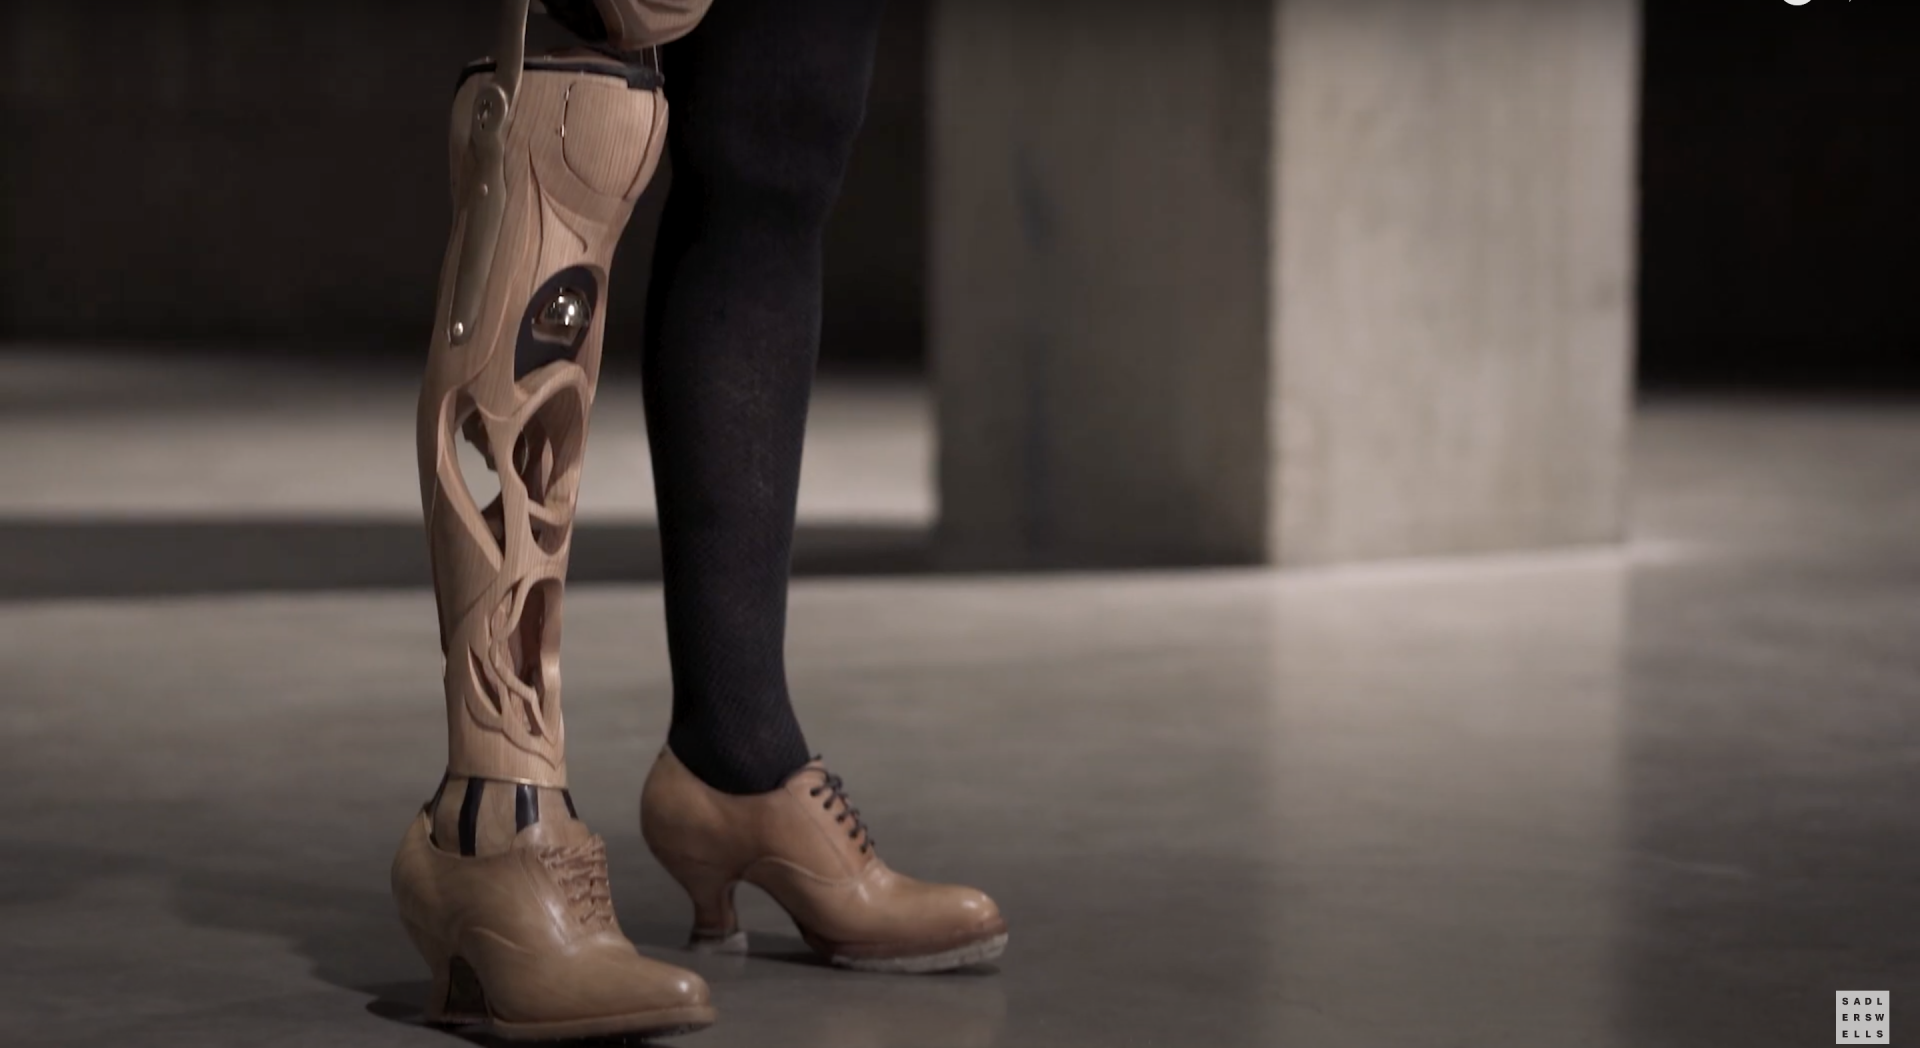 Prosthetic specialist, Sophie de Oliveira Barata, makes functional faux limbs that are literally works of art.